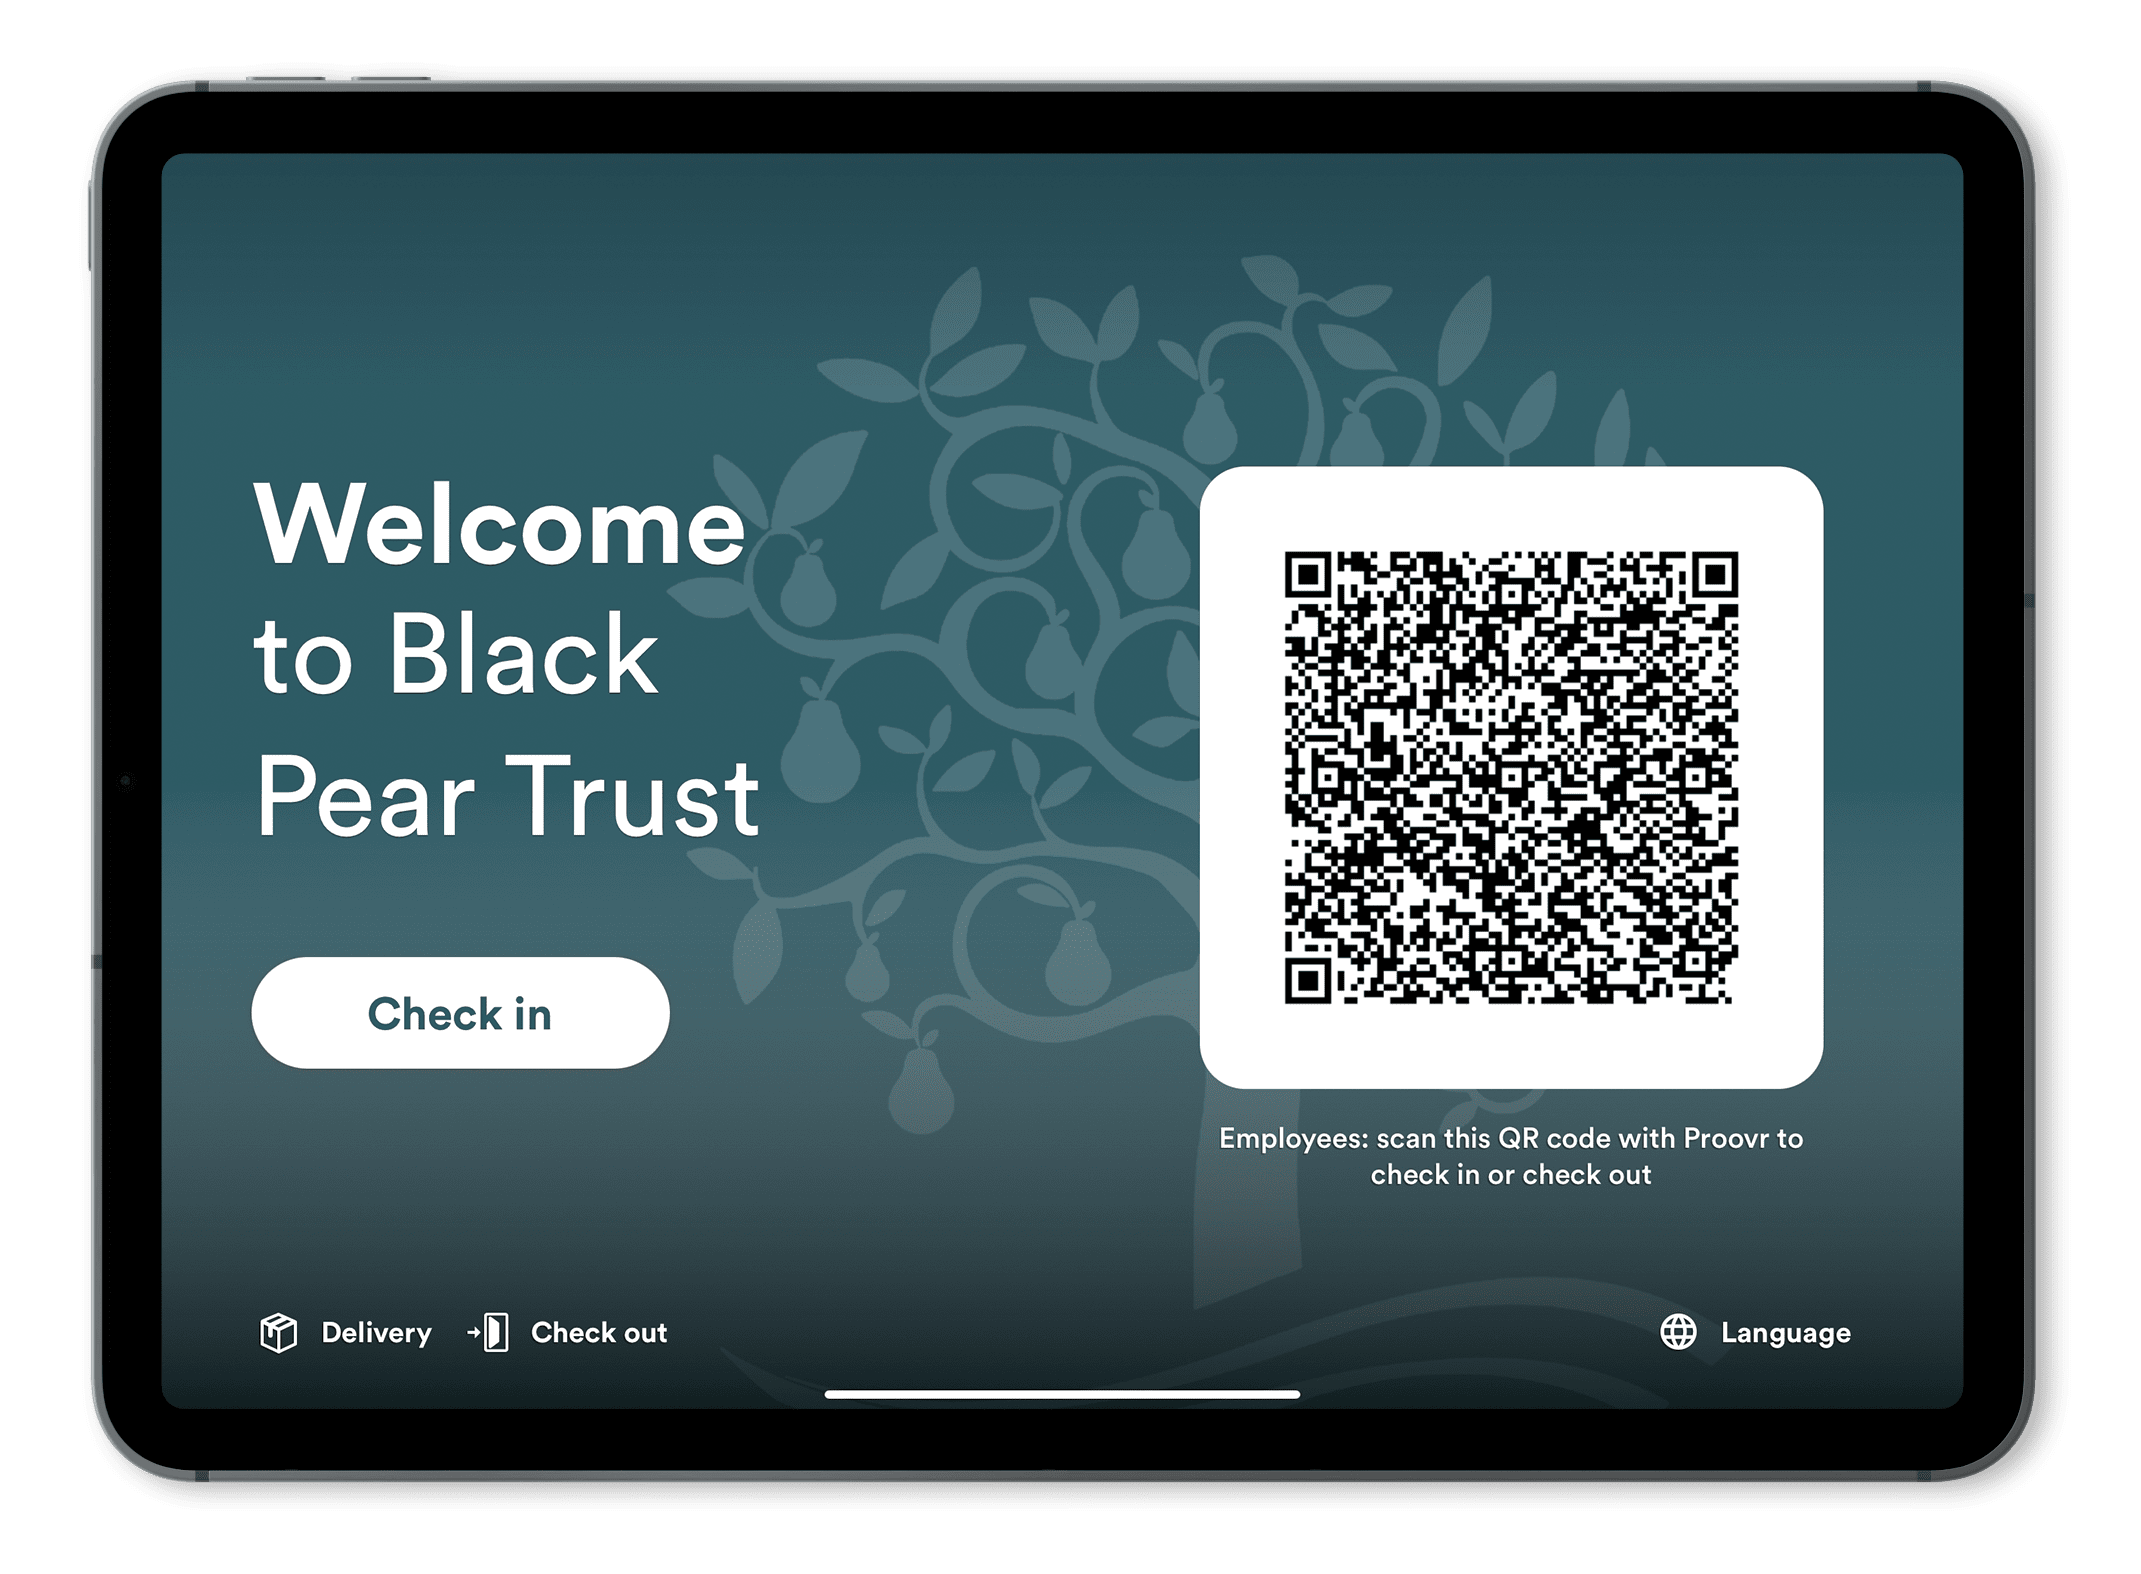 The Black Pear Trust Proxyclick employee check-in